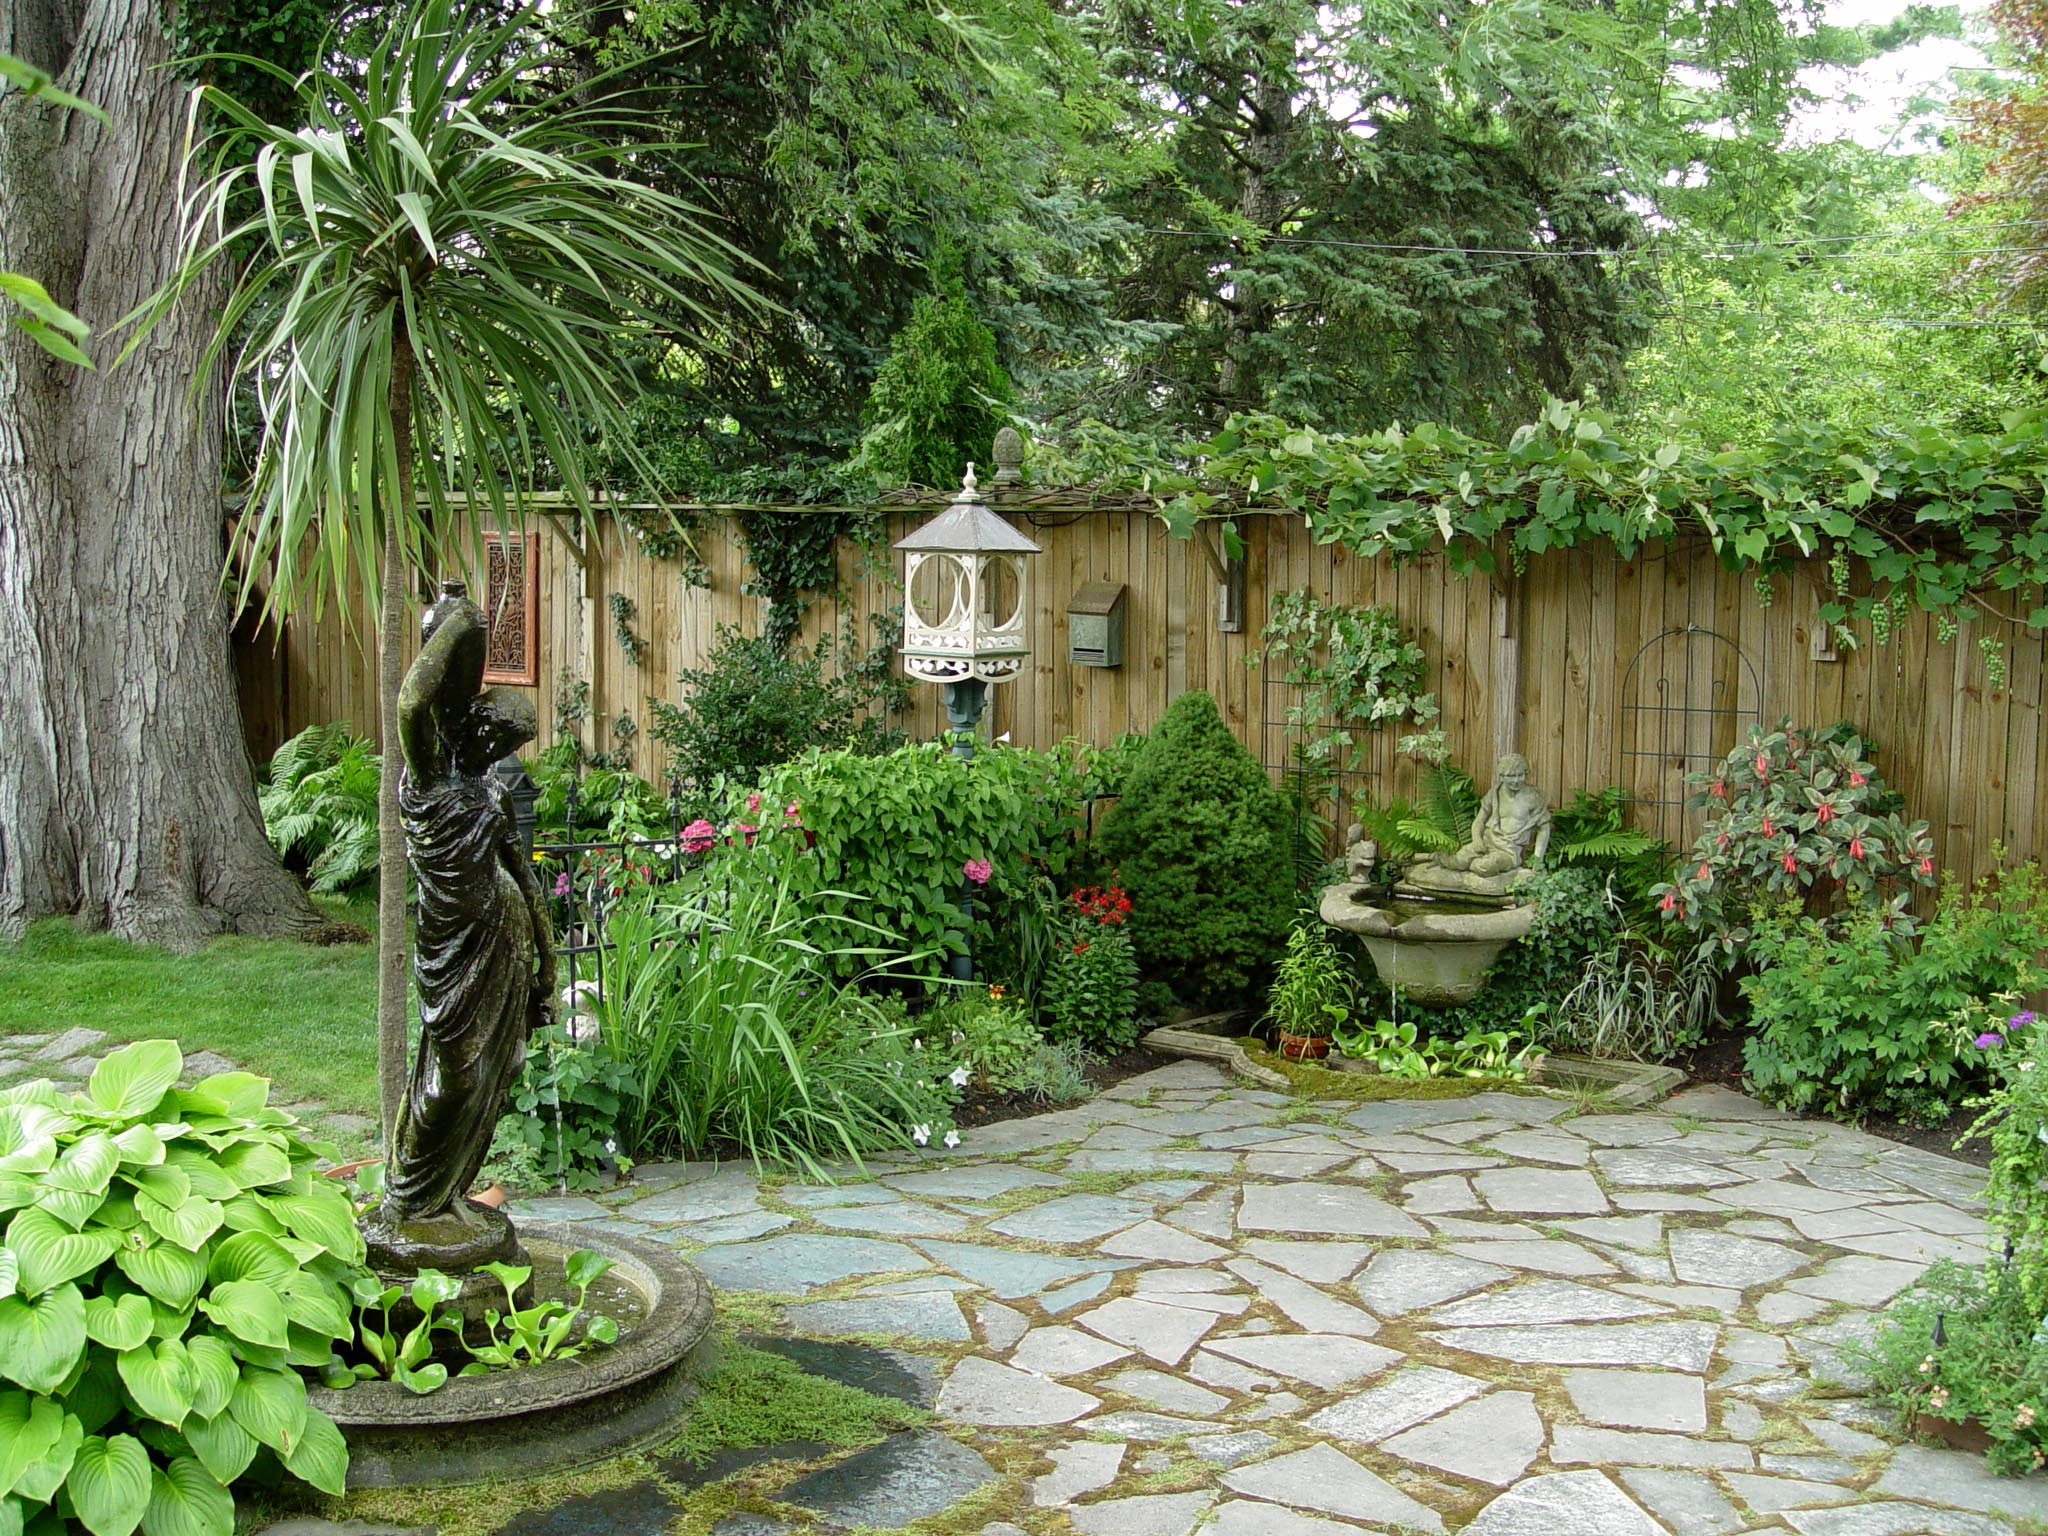 gardens come in small packages like this buffalo garden walk garden